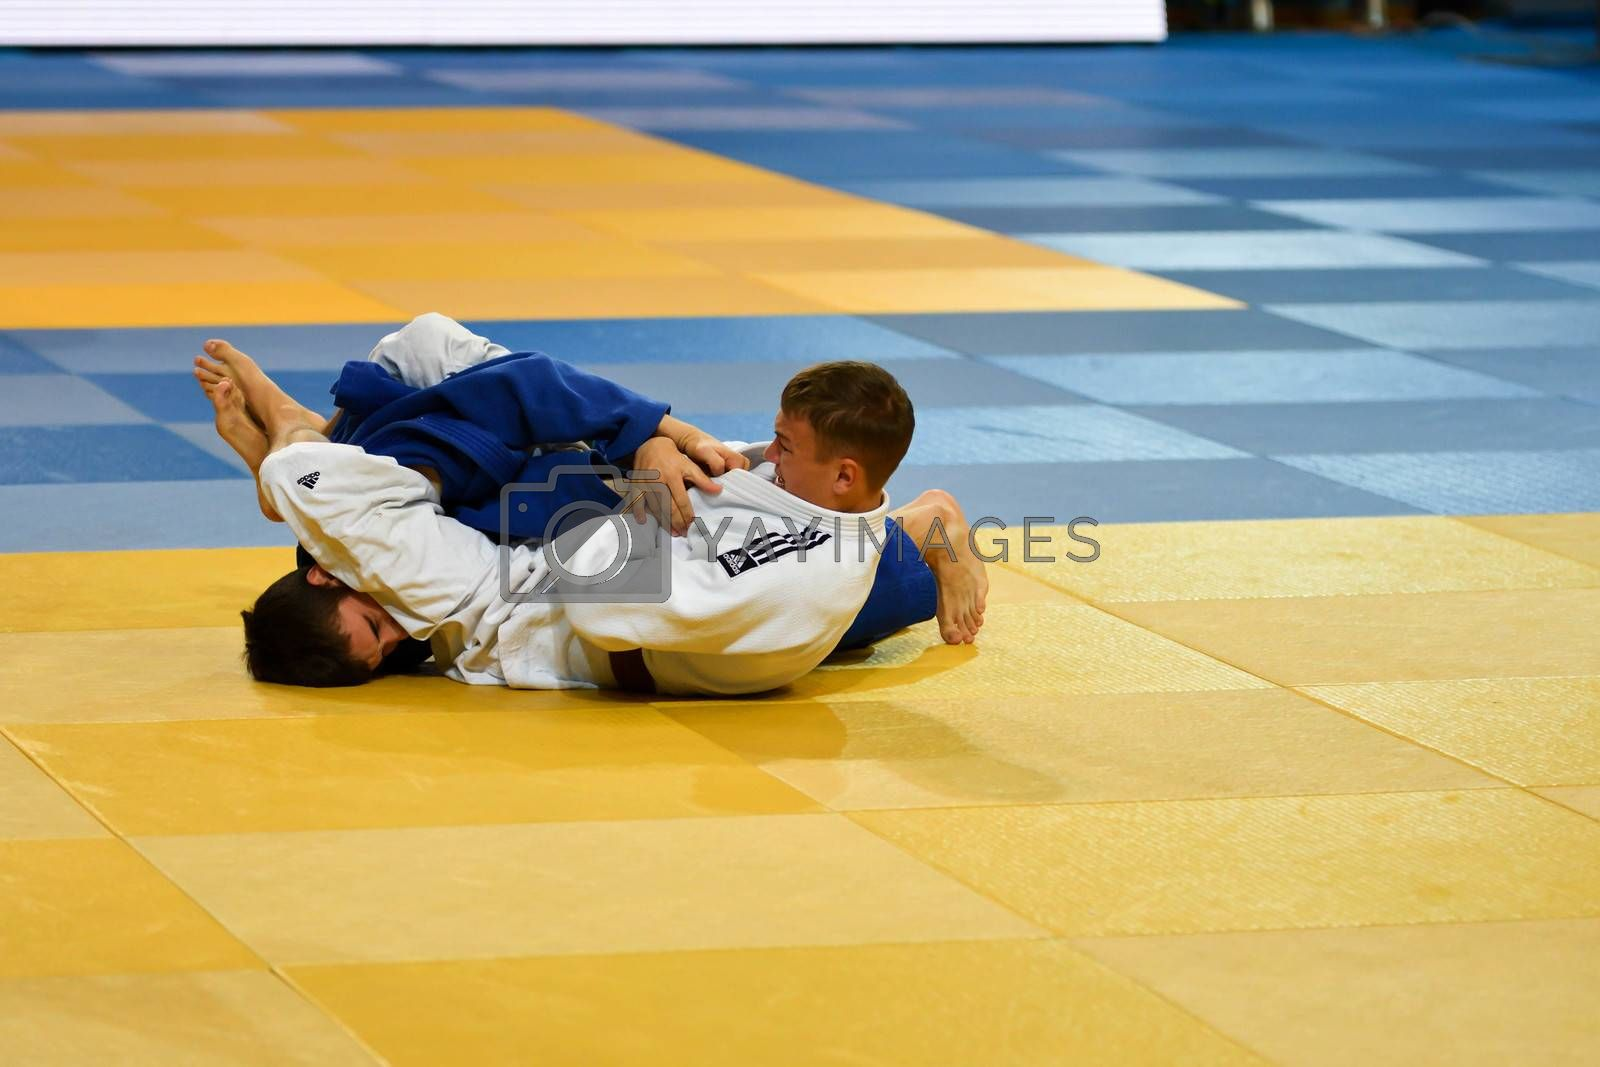 Orenburg, Russia - 21 October 2016: Boys compete in Judo at the all-Russian Judo tournament among boys and girls born between 2000-2002, dedicated to the memory of V. S. Chernomyrdin